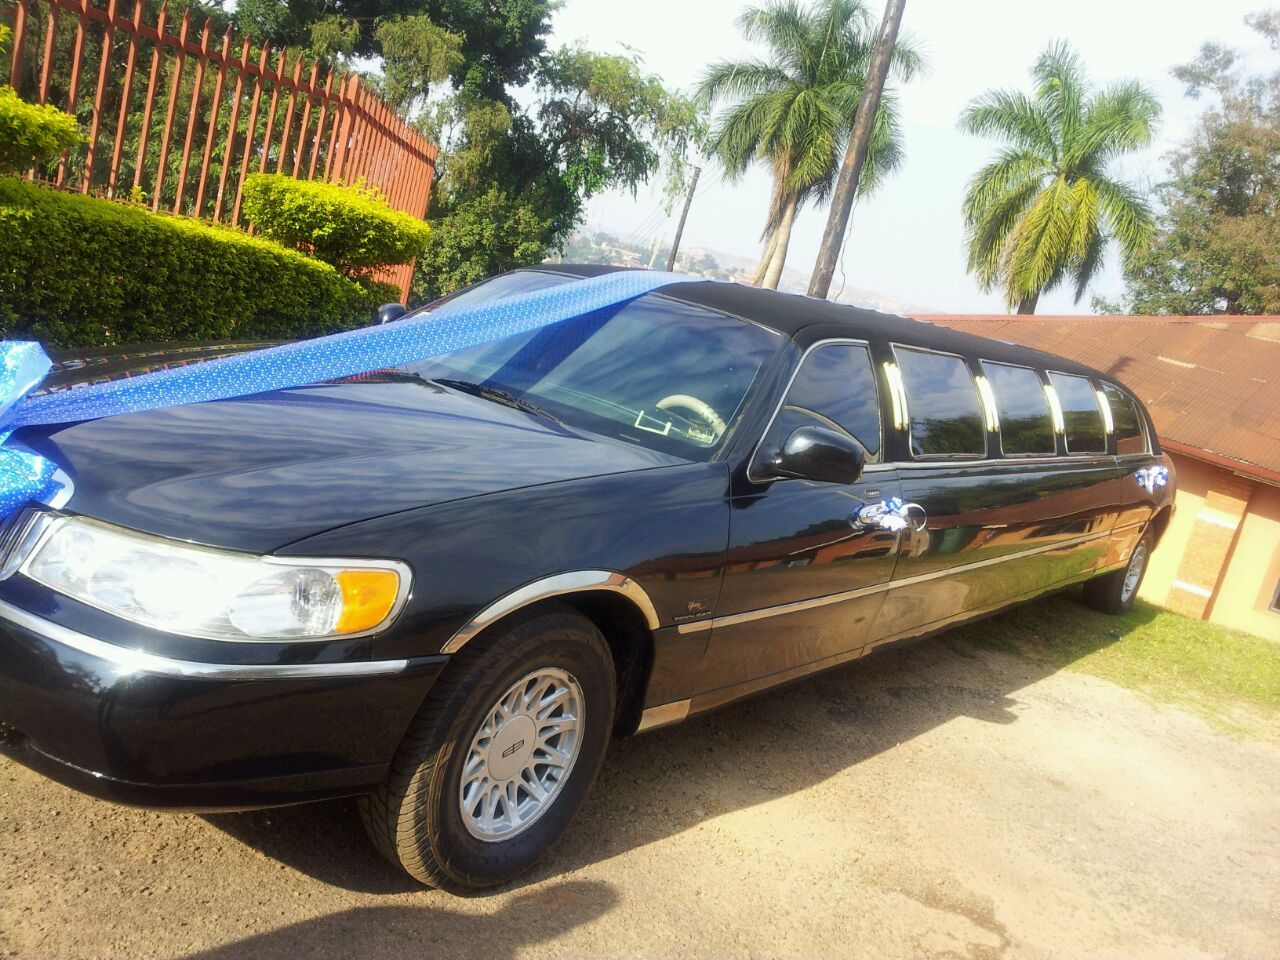 Bridal Cars : Wedding Car hire in Kampala | Car hire Kampala